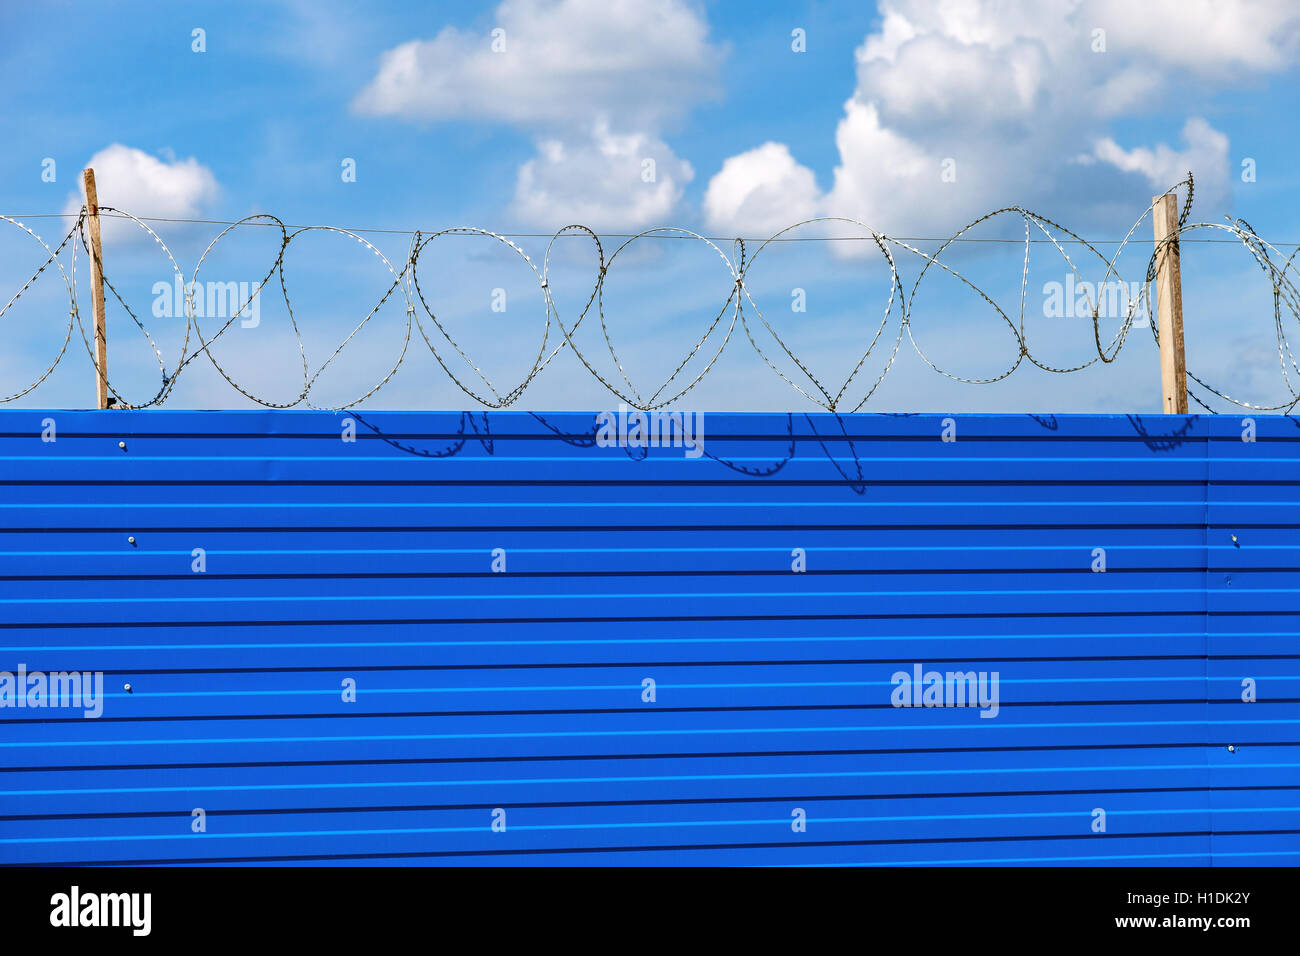 Barbed wire on the fence against a blue sky background. Restricted area - Stock Image